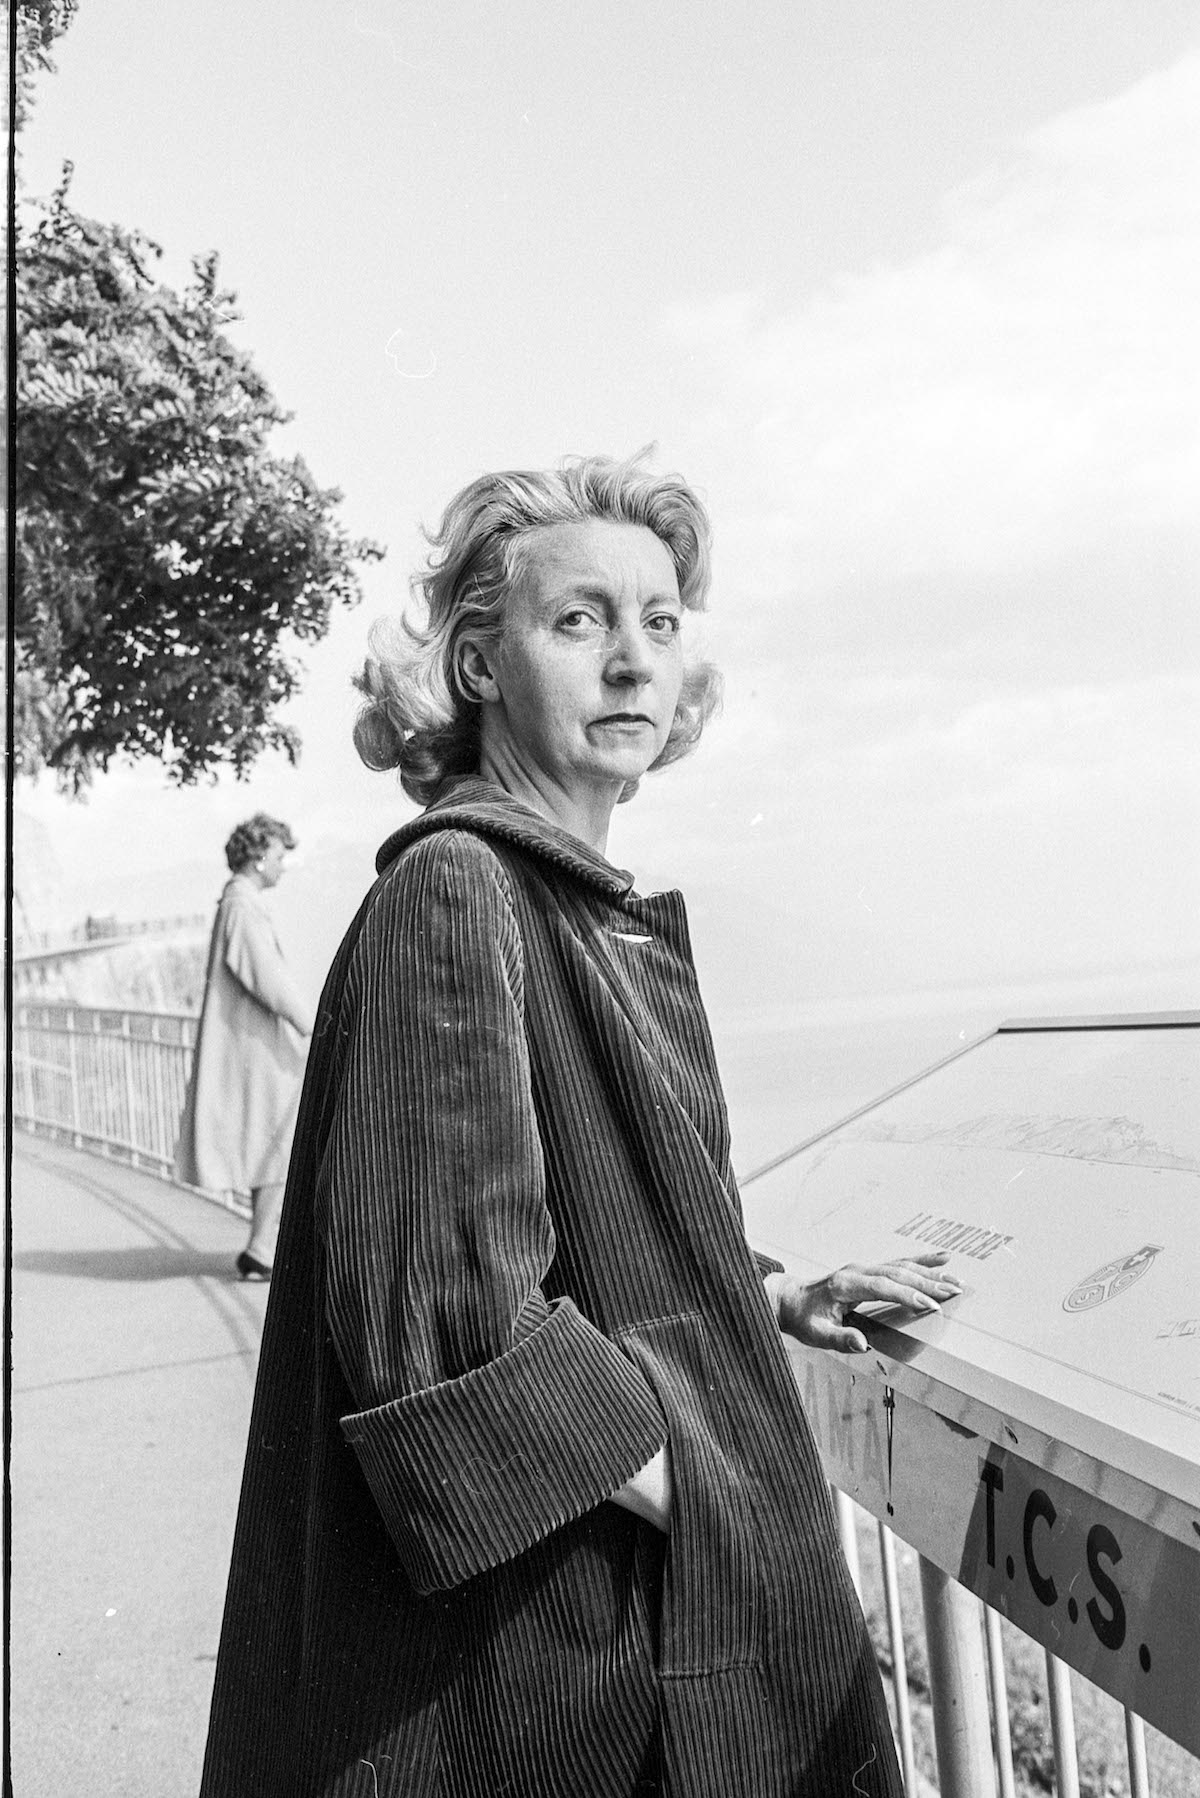 Portrait of a Woman in the 1960s